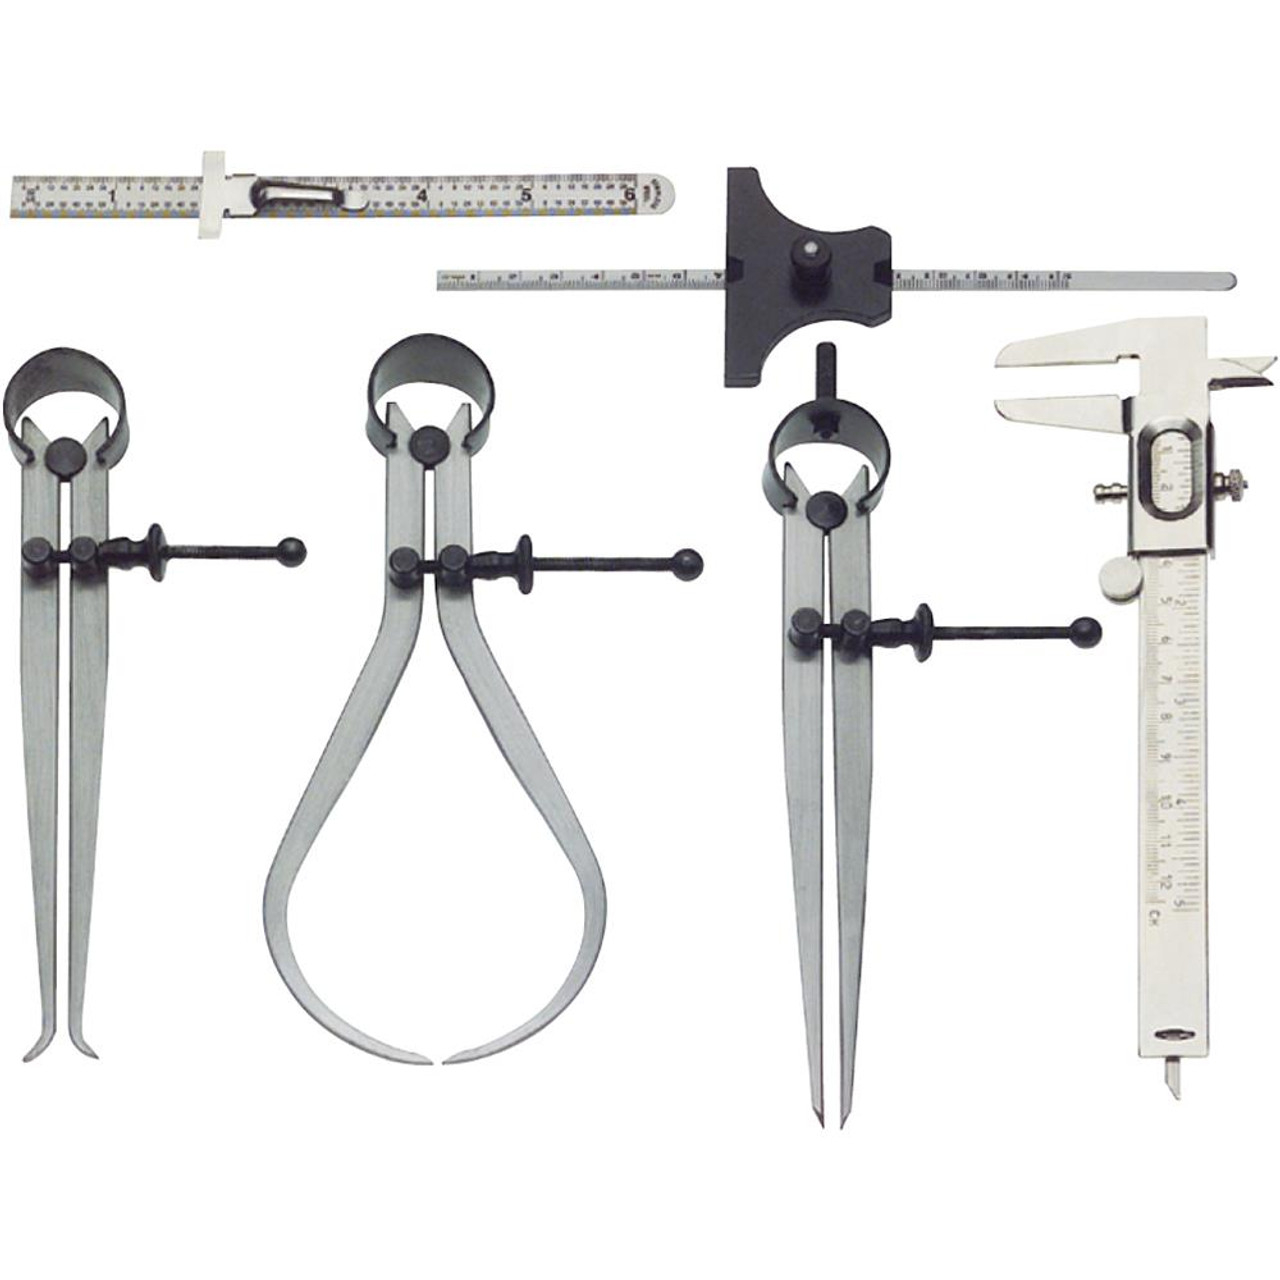 "6 Piece Measuring Set showing 6 tools, 6"" inside and outside calipers, 6"" divider, 6""scale with pocket clip, 5"" vernier caliper, 5"" depth gauge."